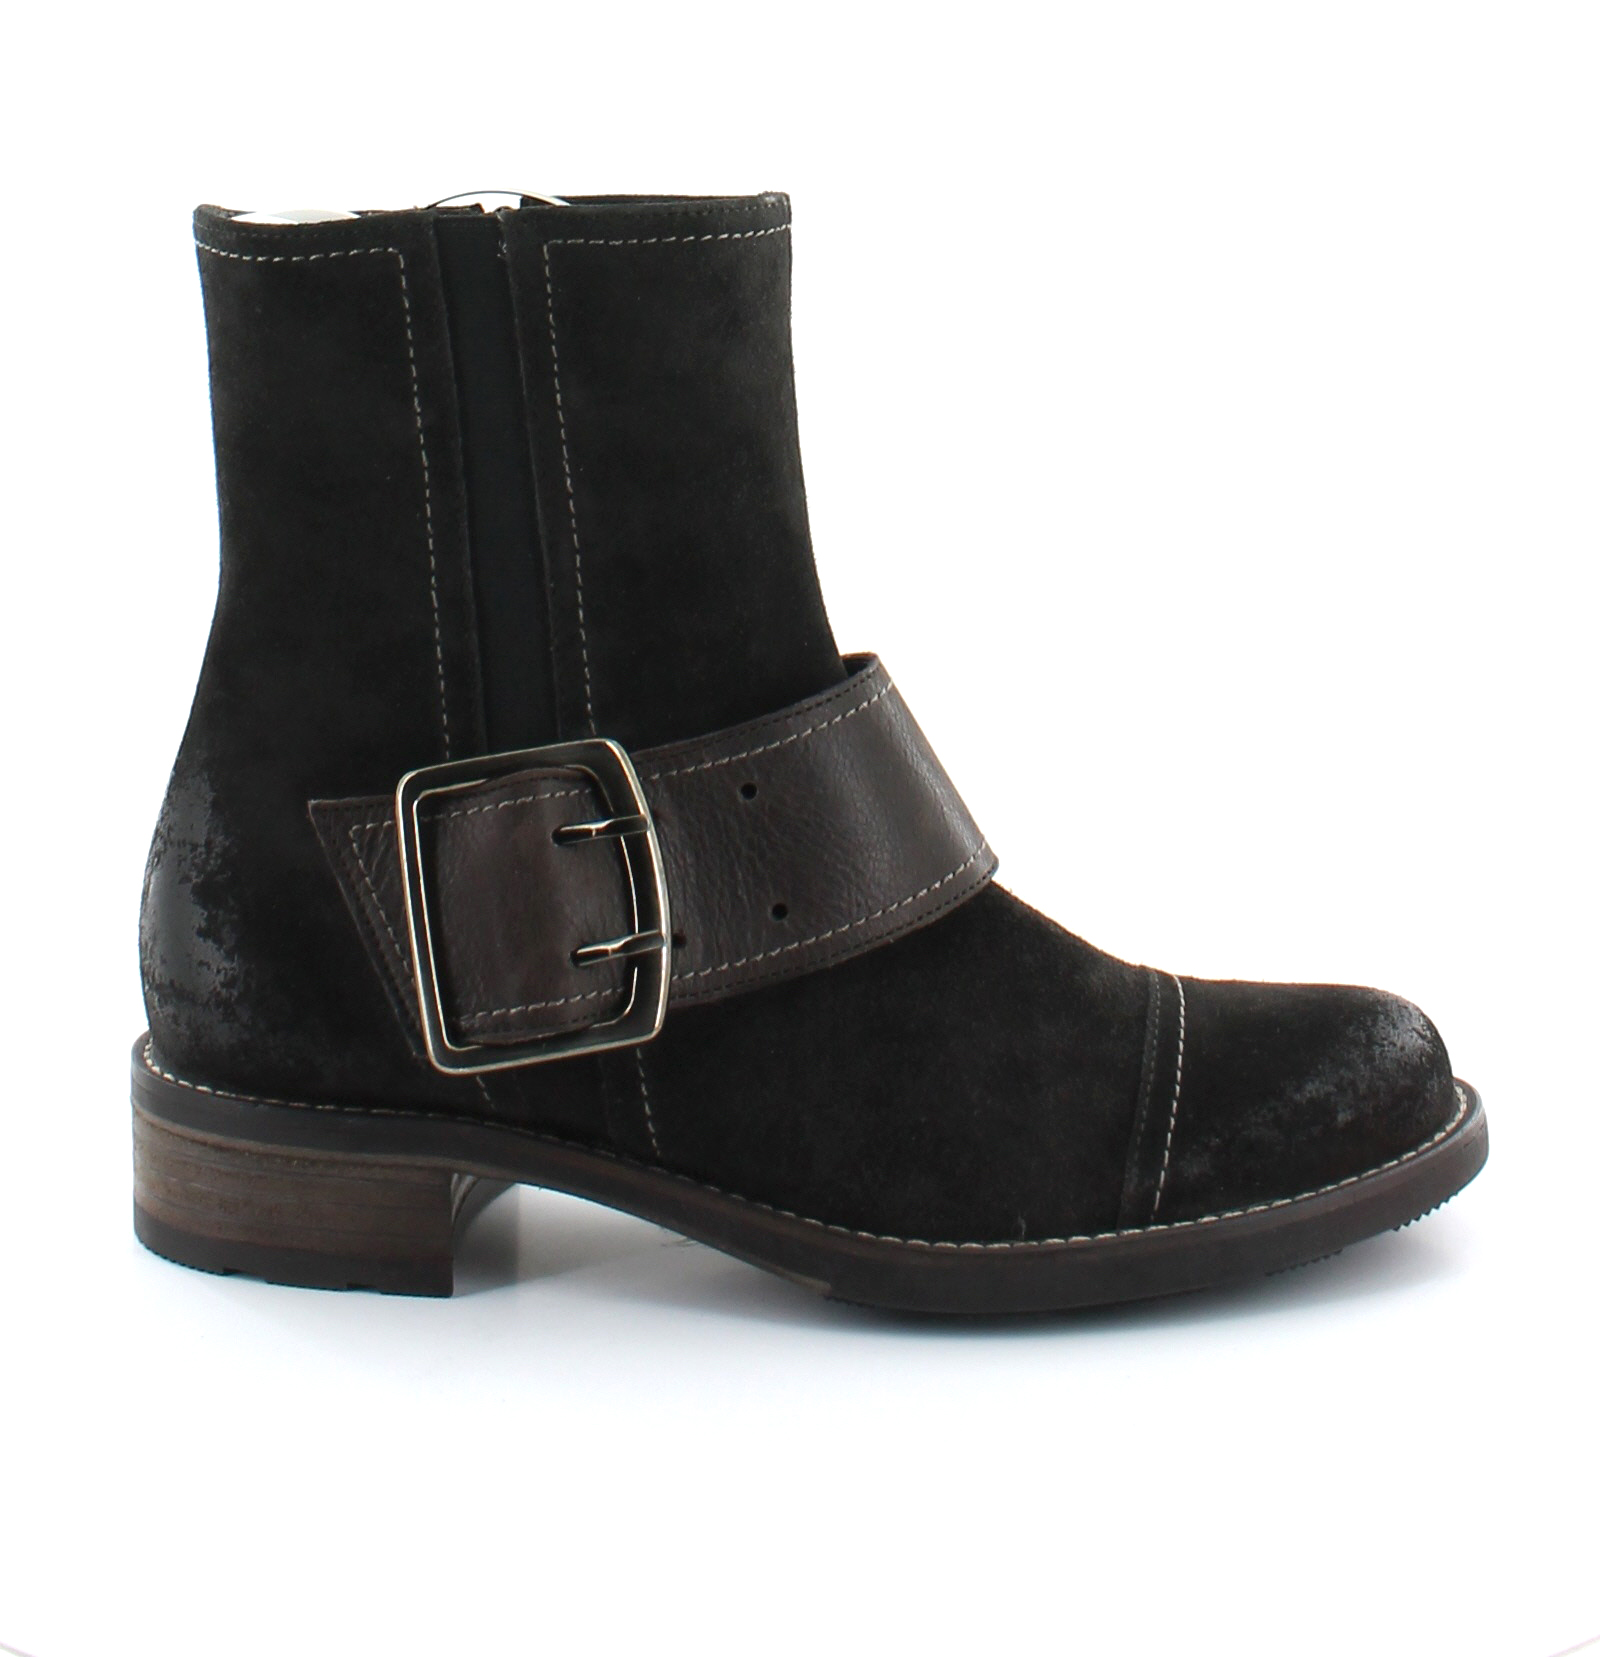 about Paul Green Ohio Brown Womens Shoes Size 6 m Boots MSRP $425